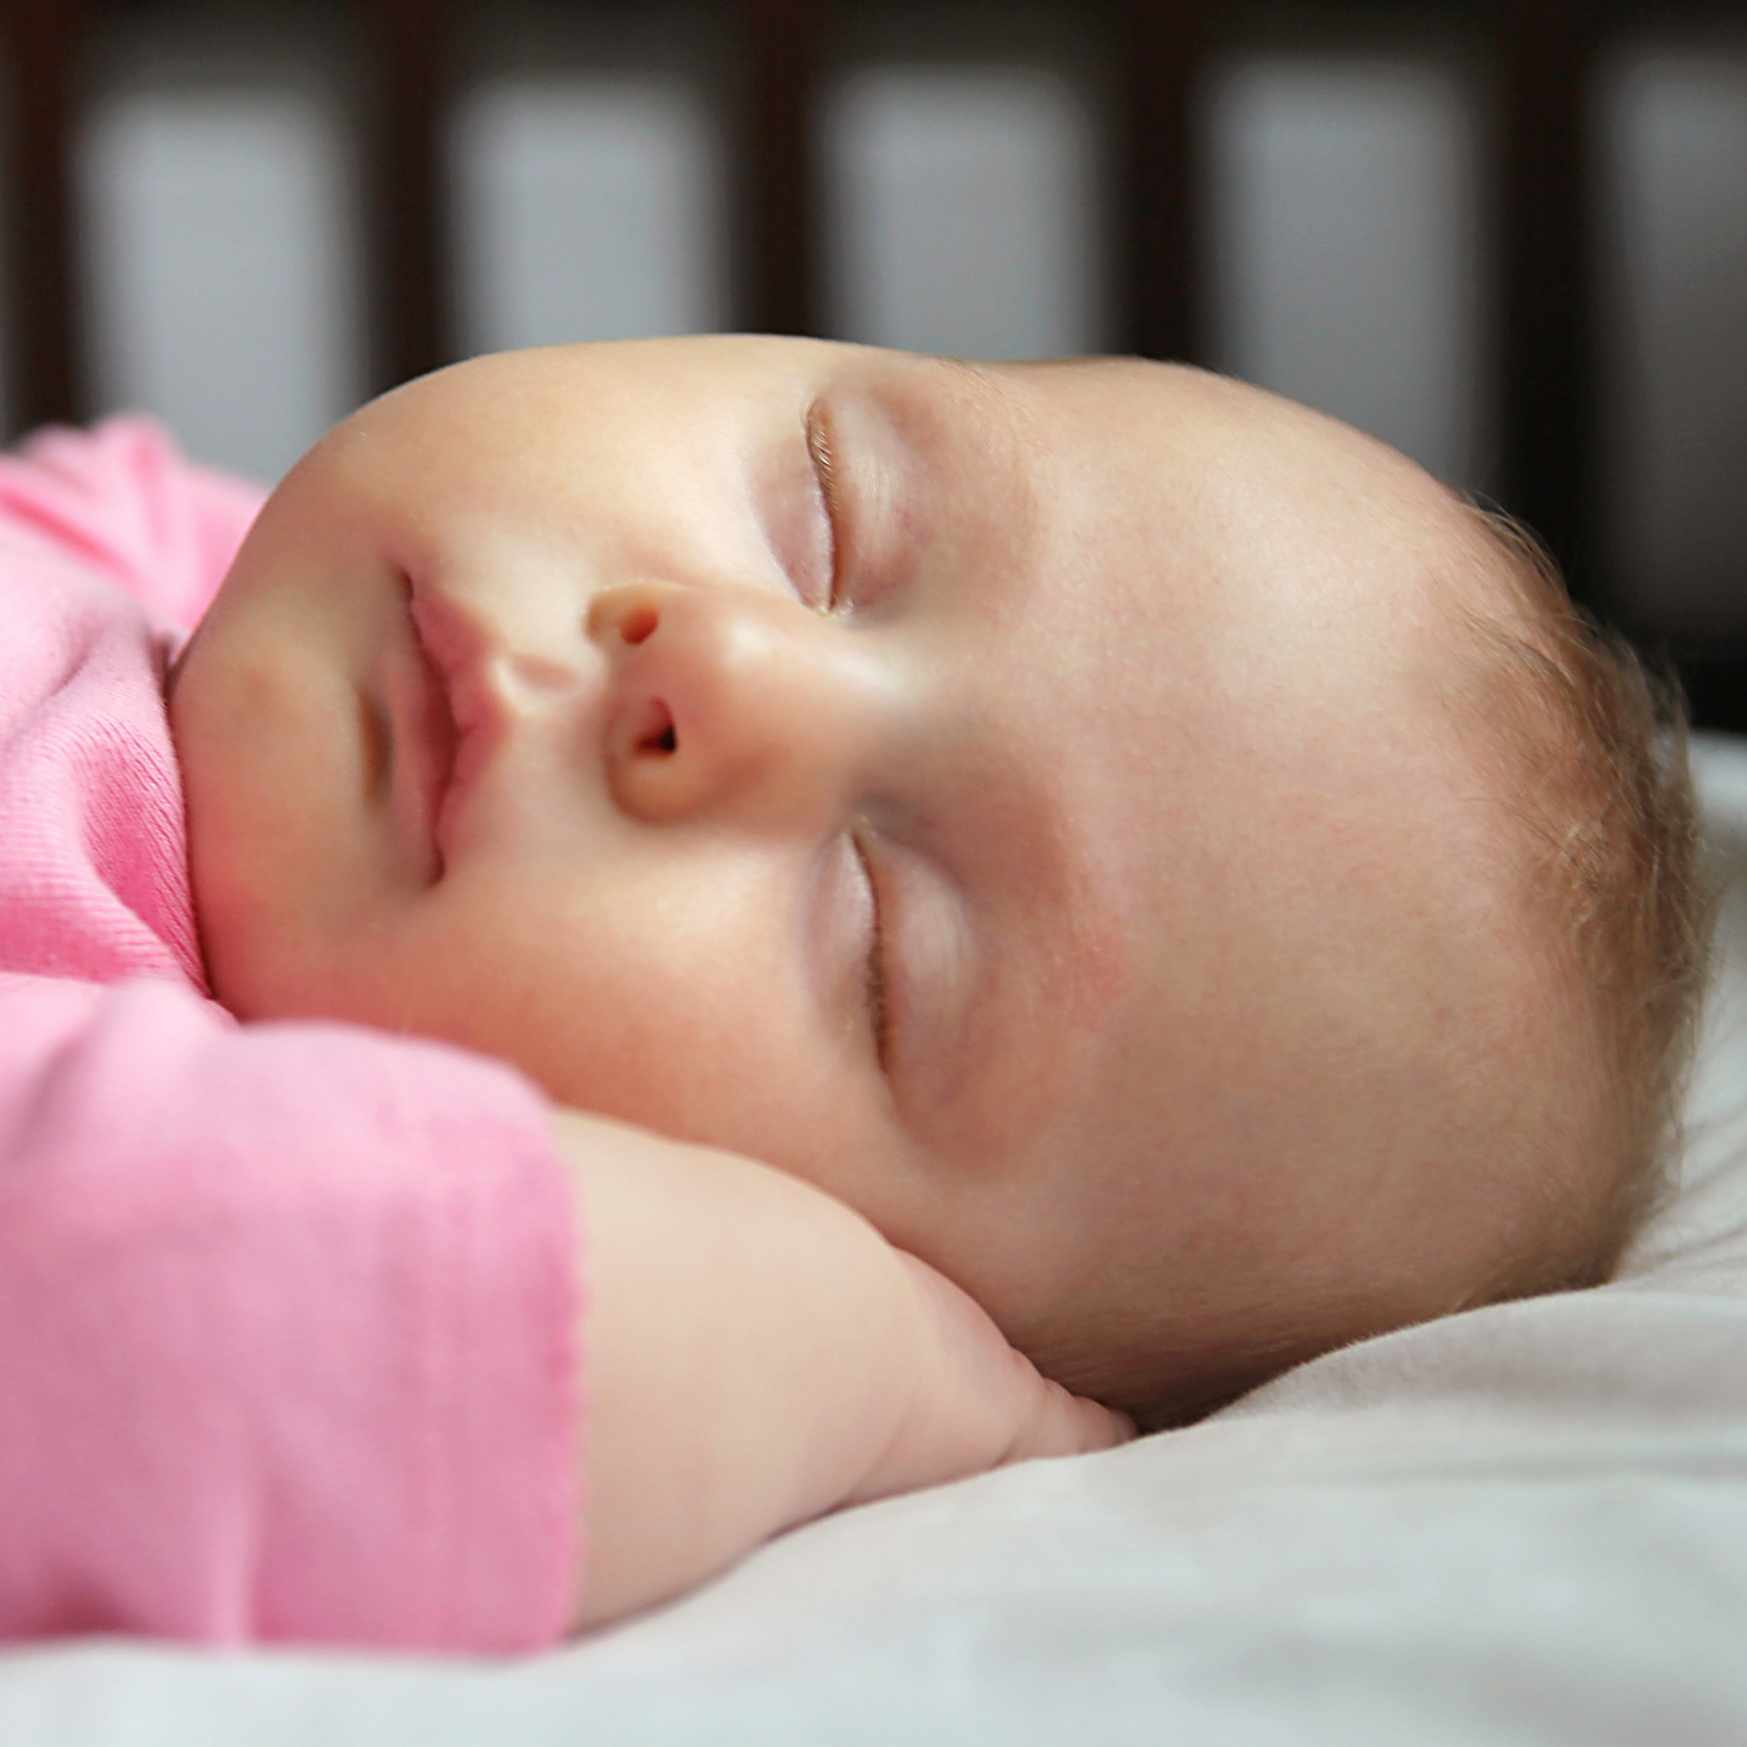 baby girl asleep on her back in a crib